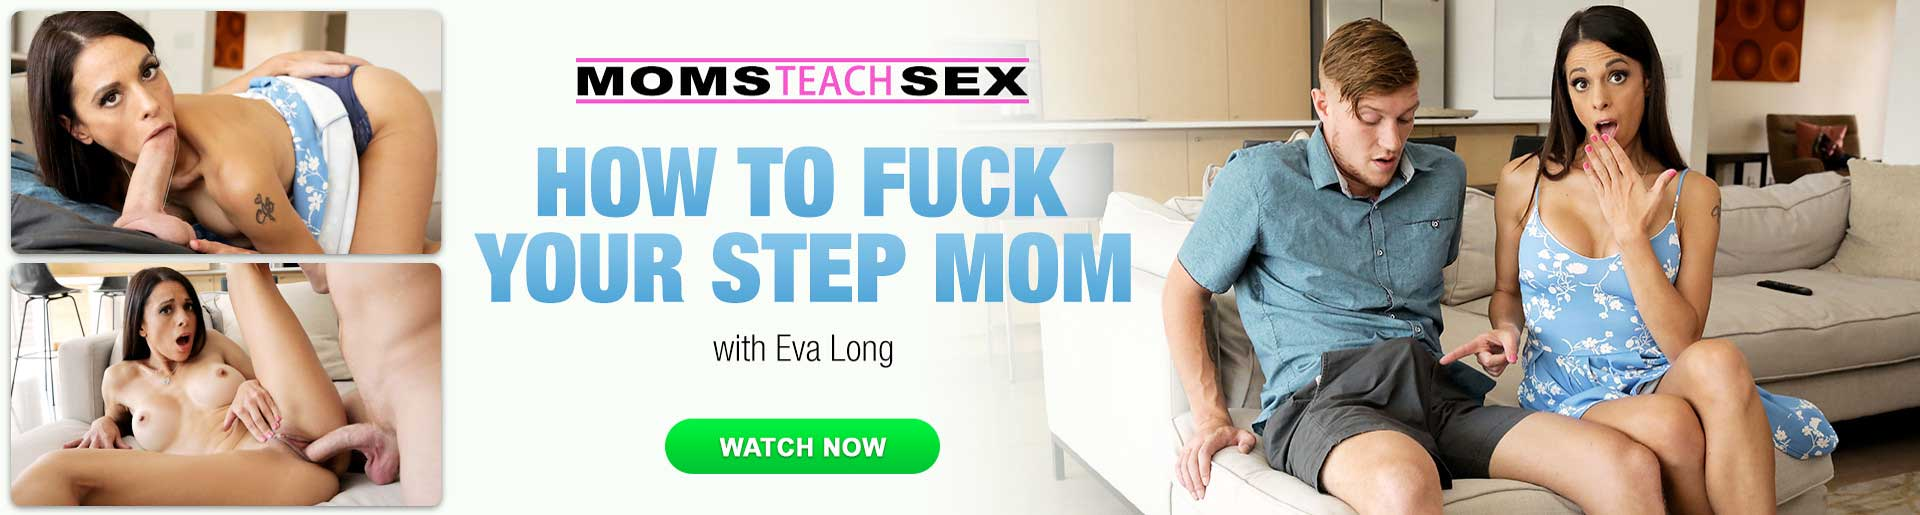 Moms-Teach-Sex---How-to-Fuck-Your-Step-Mom with Eva Long